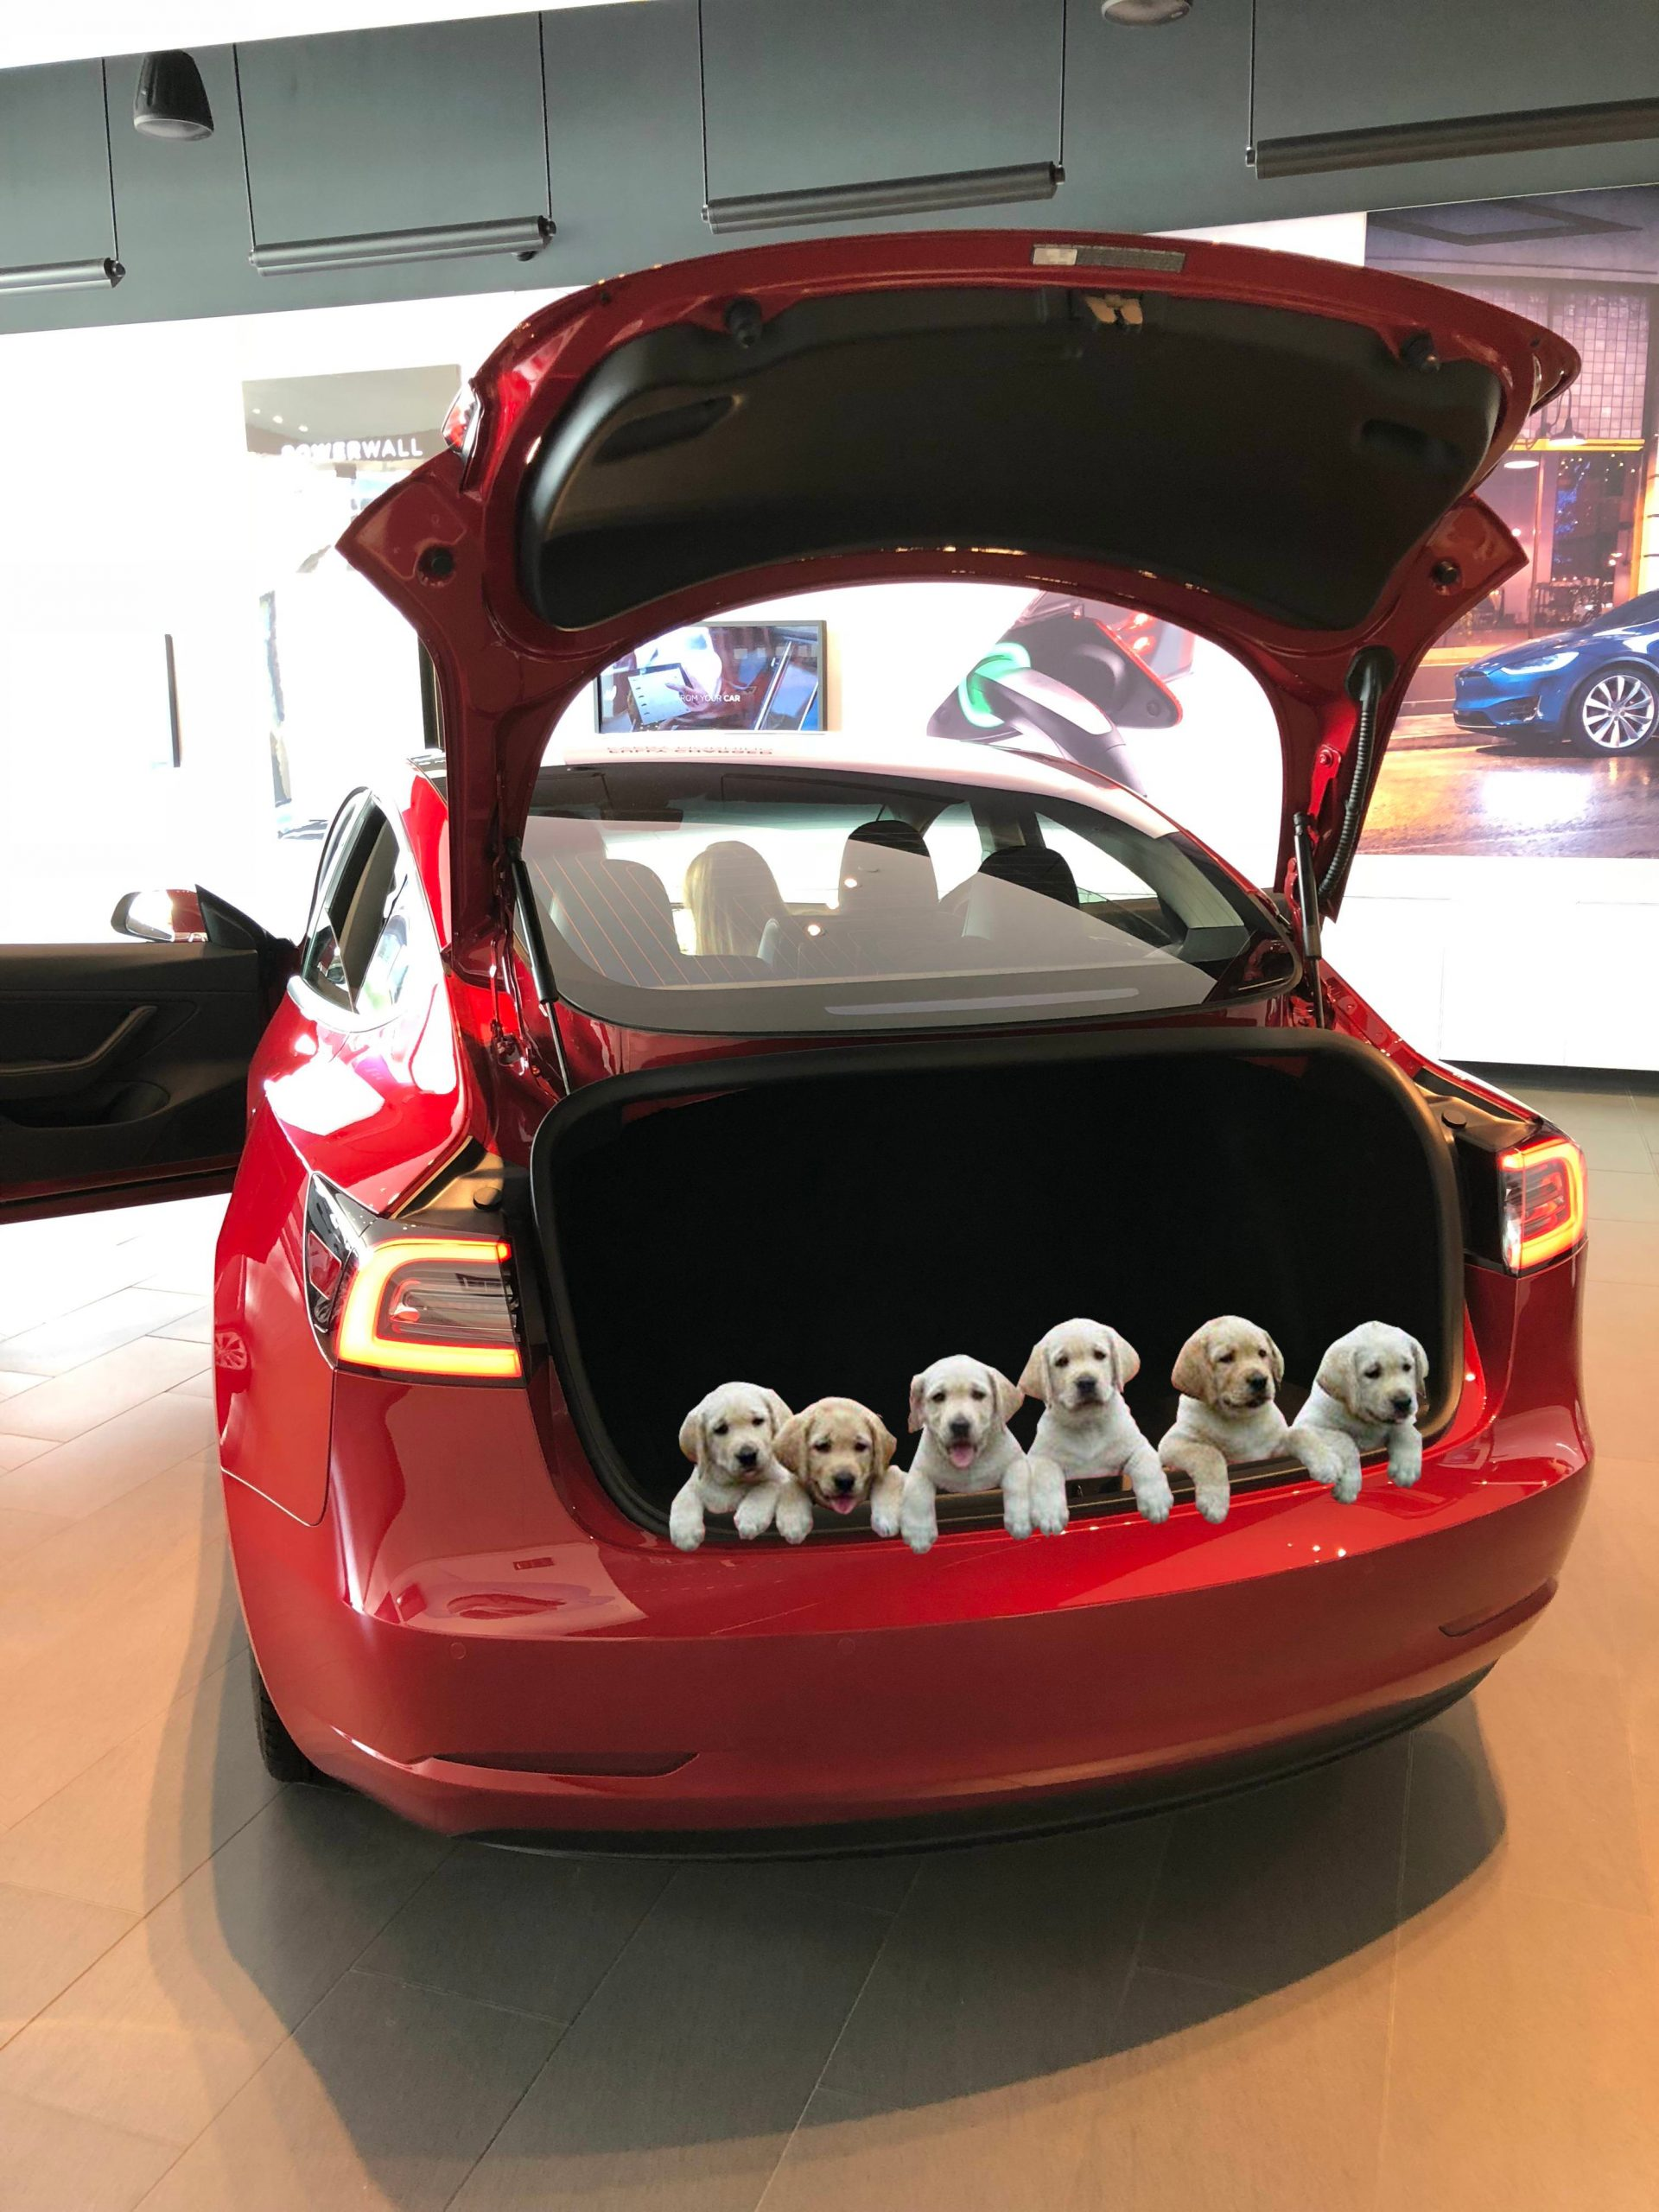 New Sales Incentivize Announced: Free Puppy with Every Tesla Delivered before Year-End